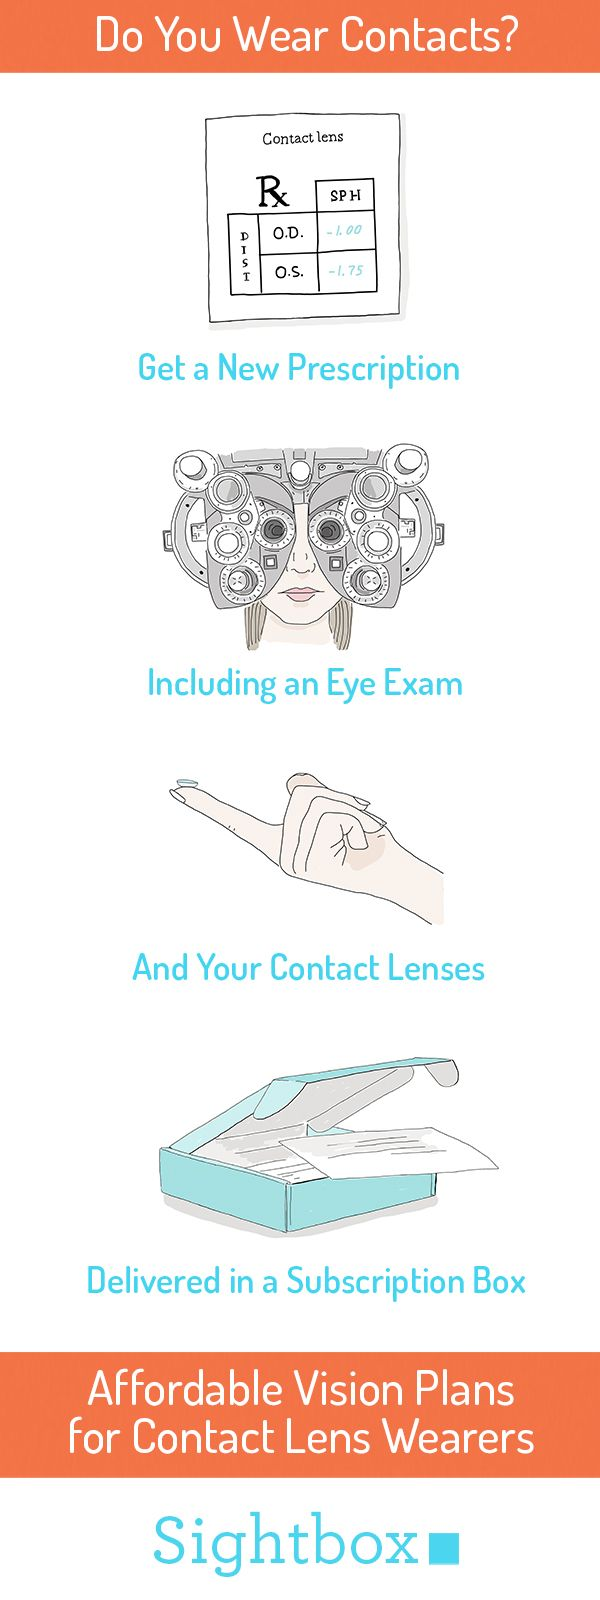 Get your annual eye exam and contact lens delivery on a monthly payment plan. Learn more at Sightbox.com!